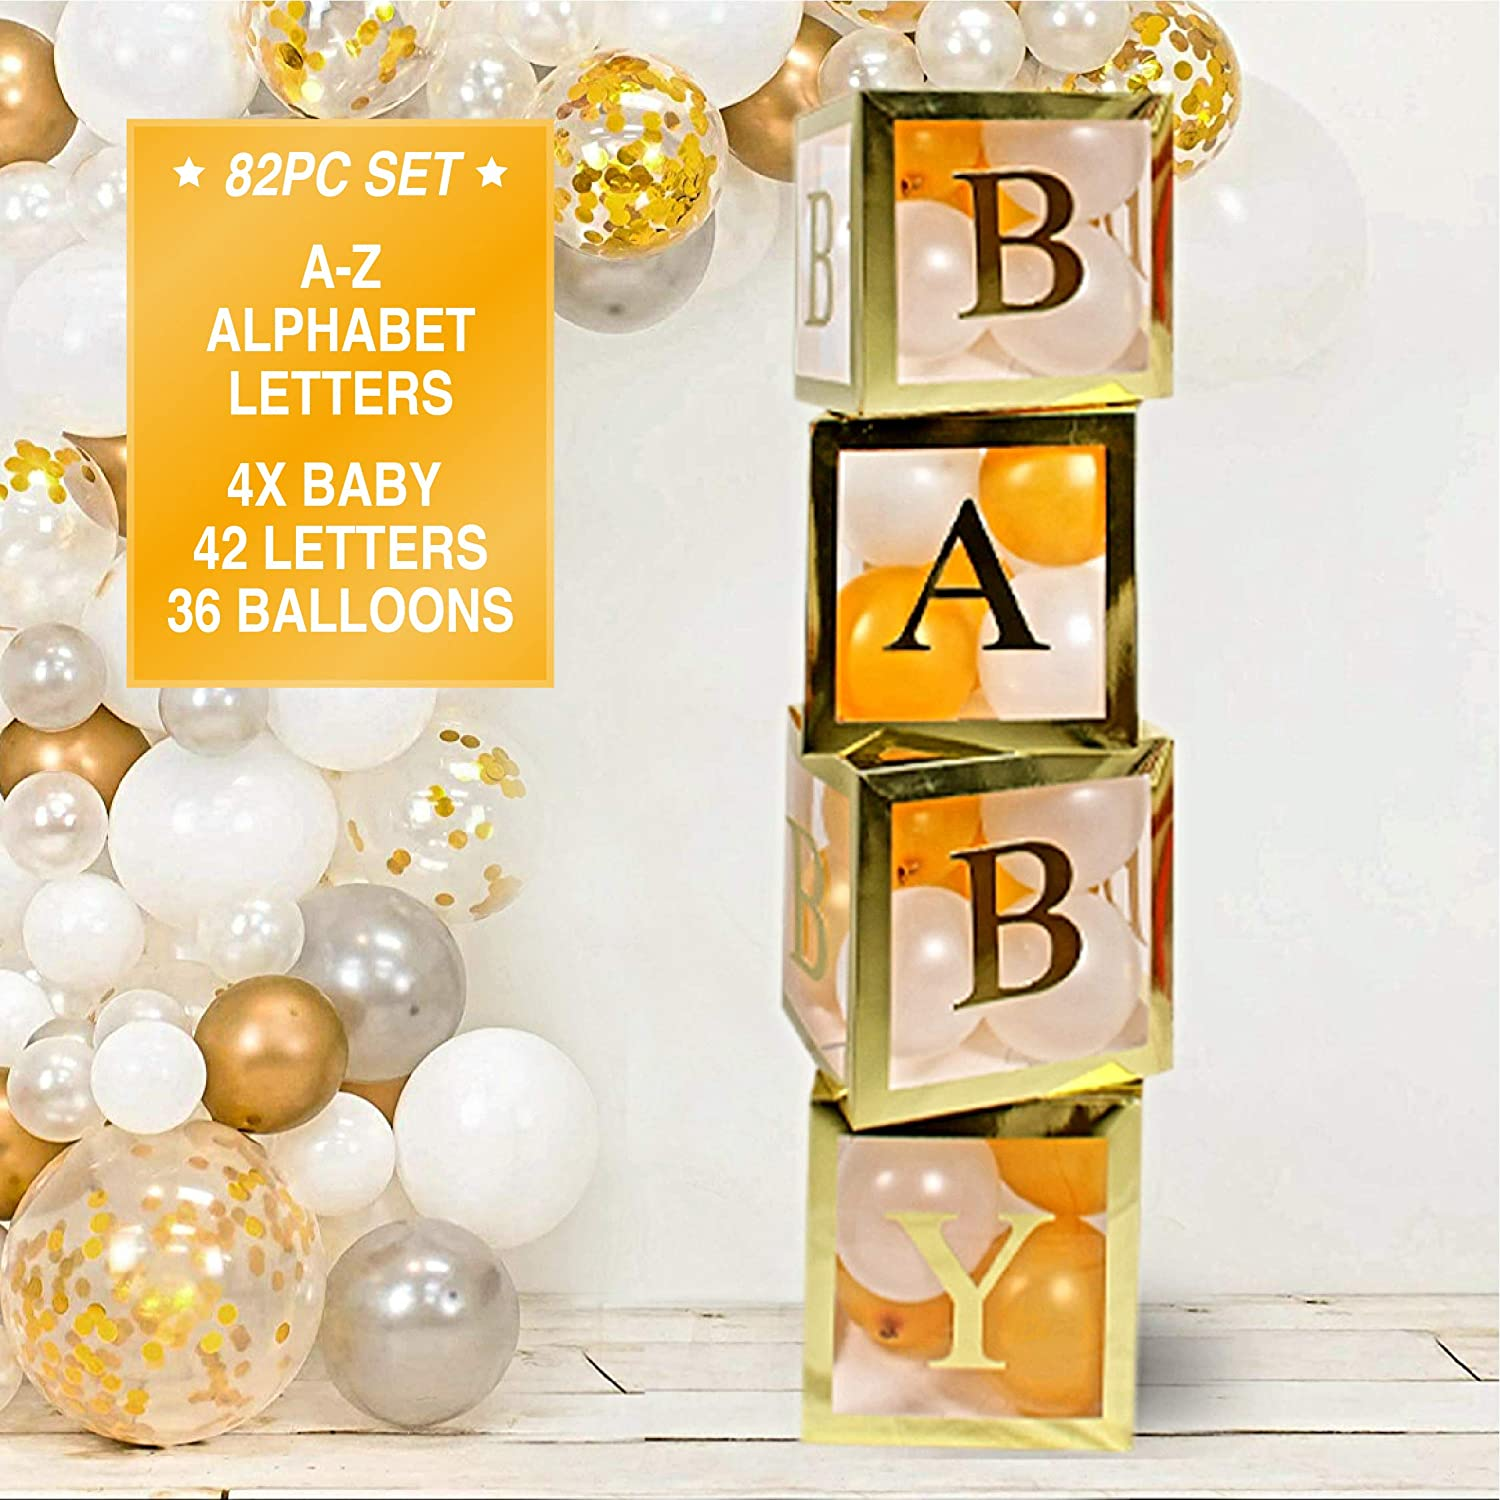 Baby Shower Decorations for Boys Girls,4pcs DIY Gold-Transparent Box with Letters for Gender Reveal Party Supplies Birthday Party Decorations